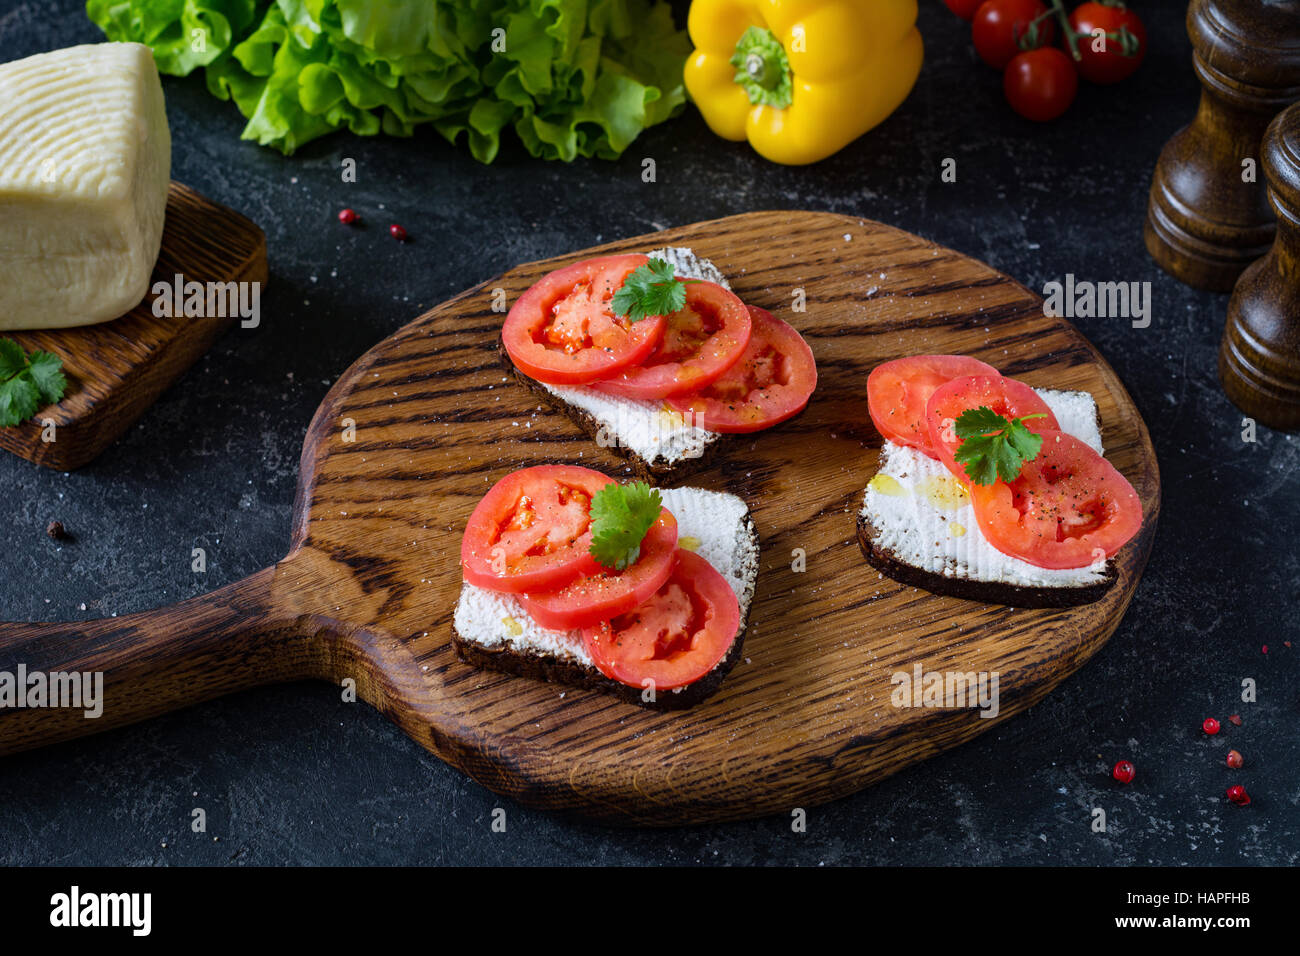 Healthy sandwich with fresh ricotta cheese, tomatoes and parsley on whole grain rye bread. Side view, front focus - Stock Image